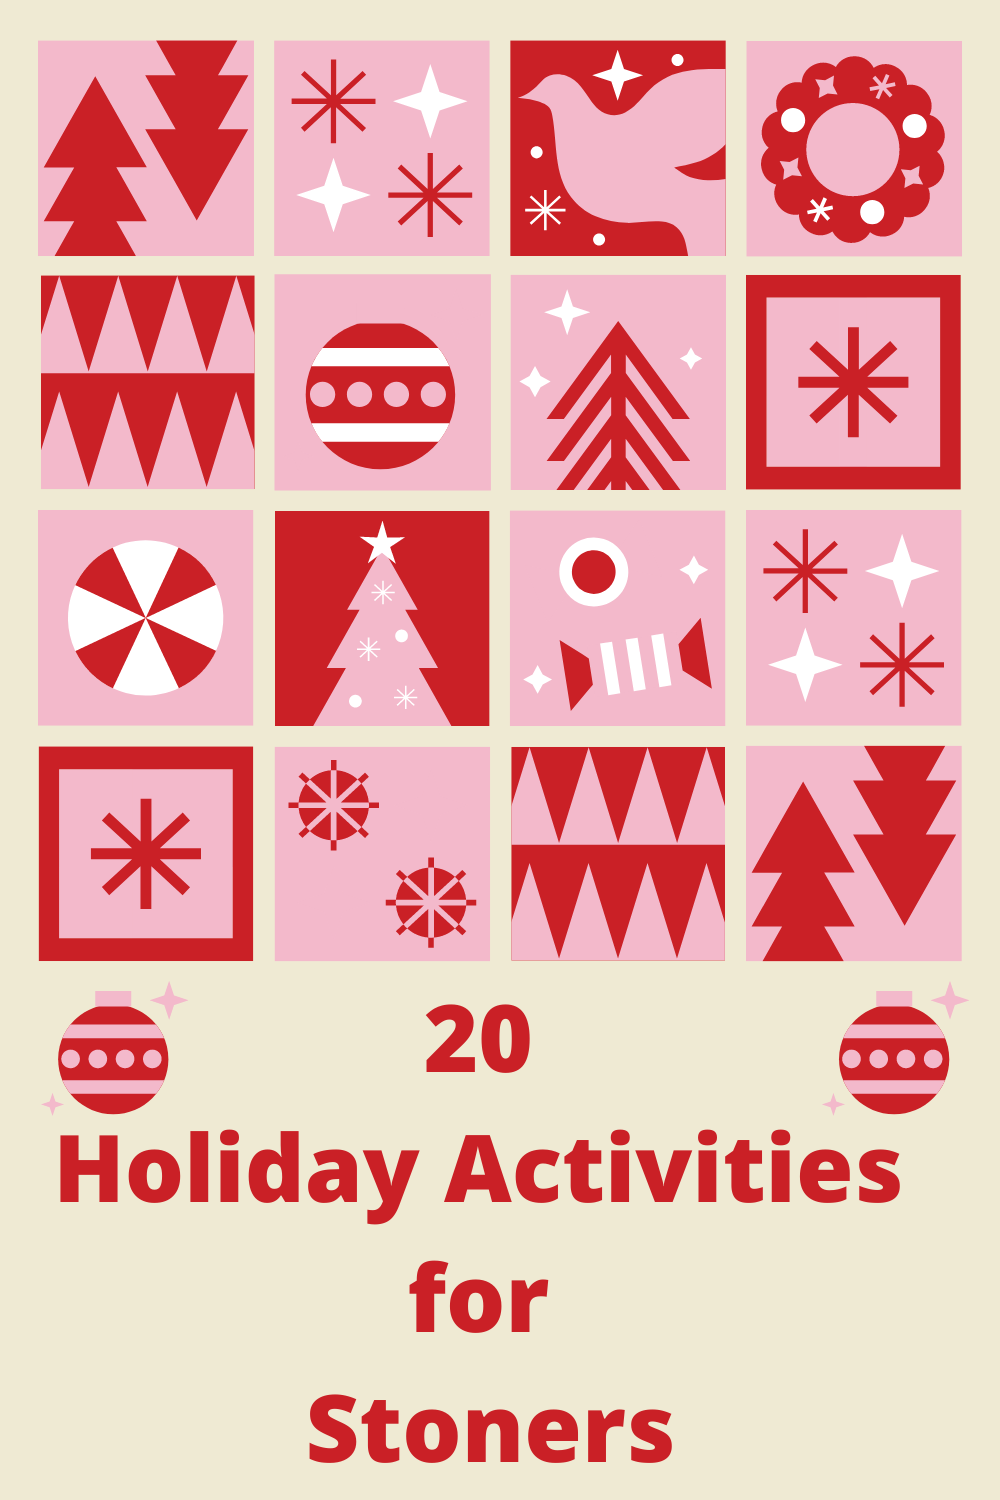 20 Holiday Activities for Stoners